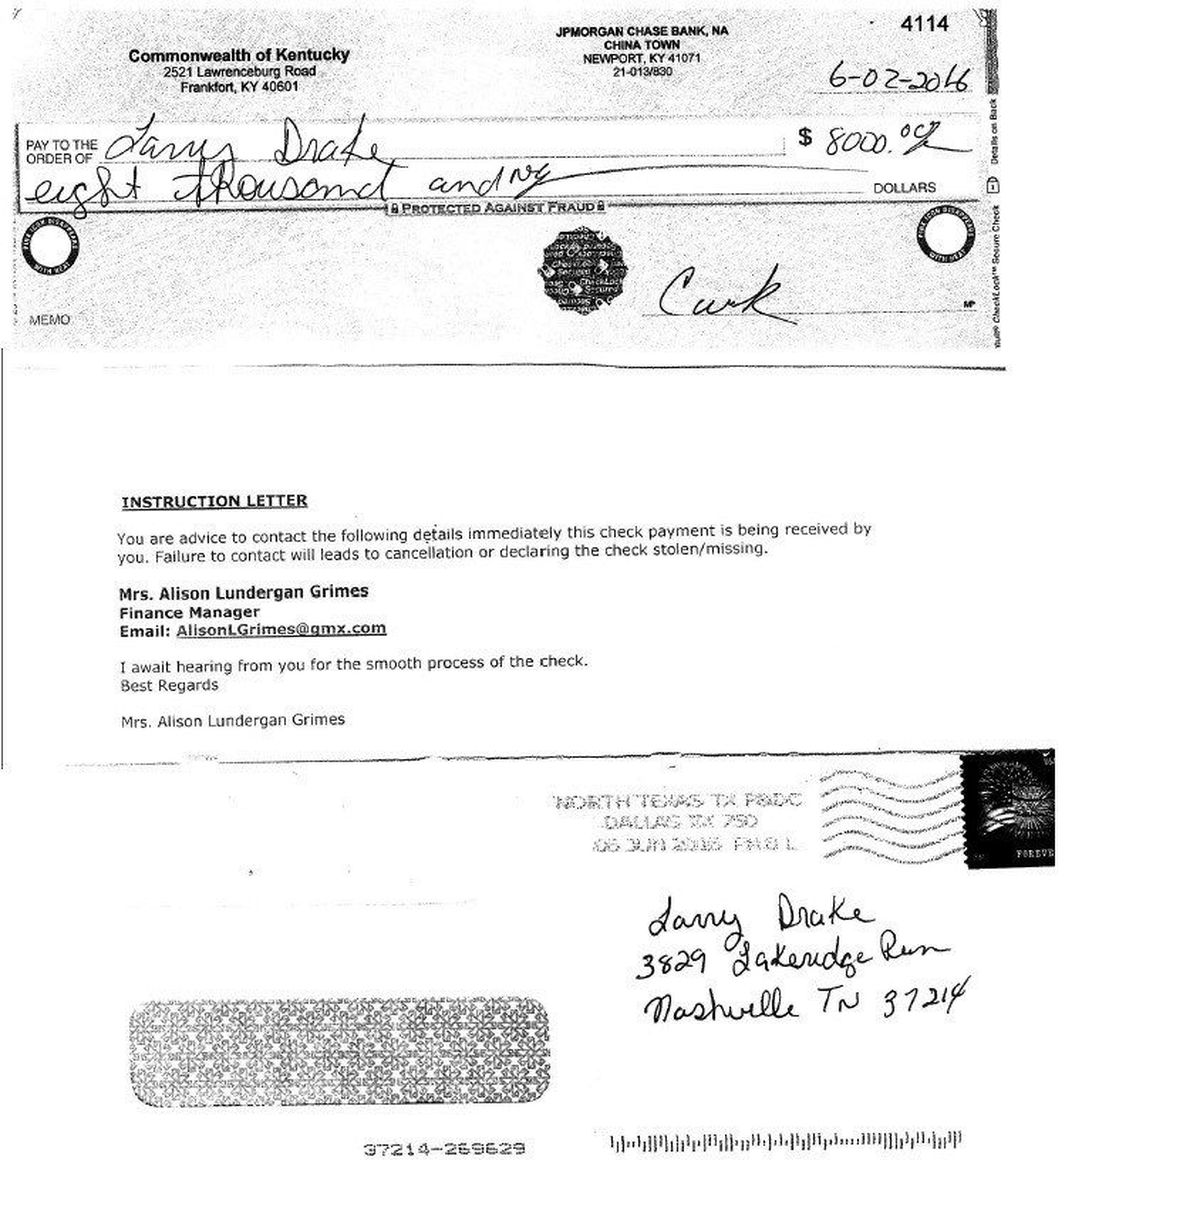 Check fraud scam alert issued by Kentucky Treasurer